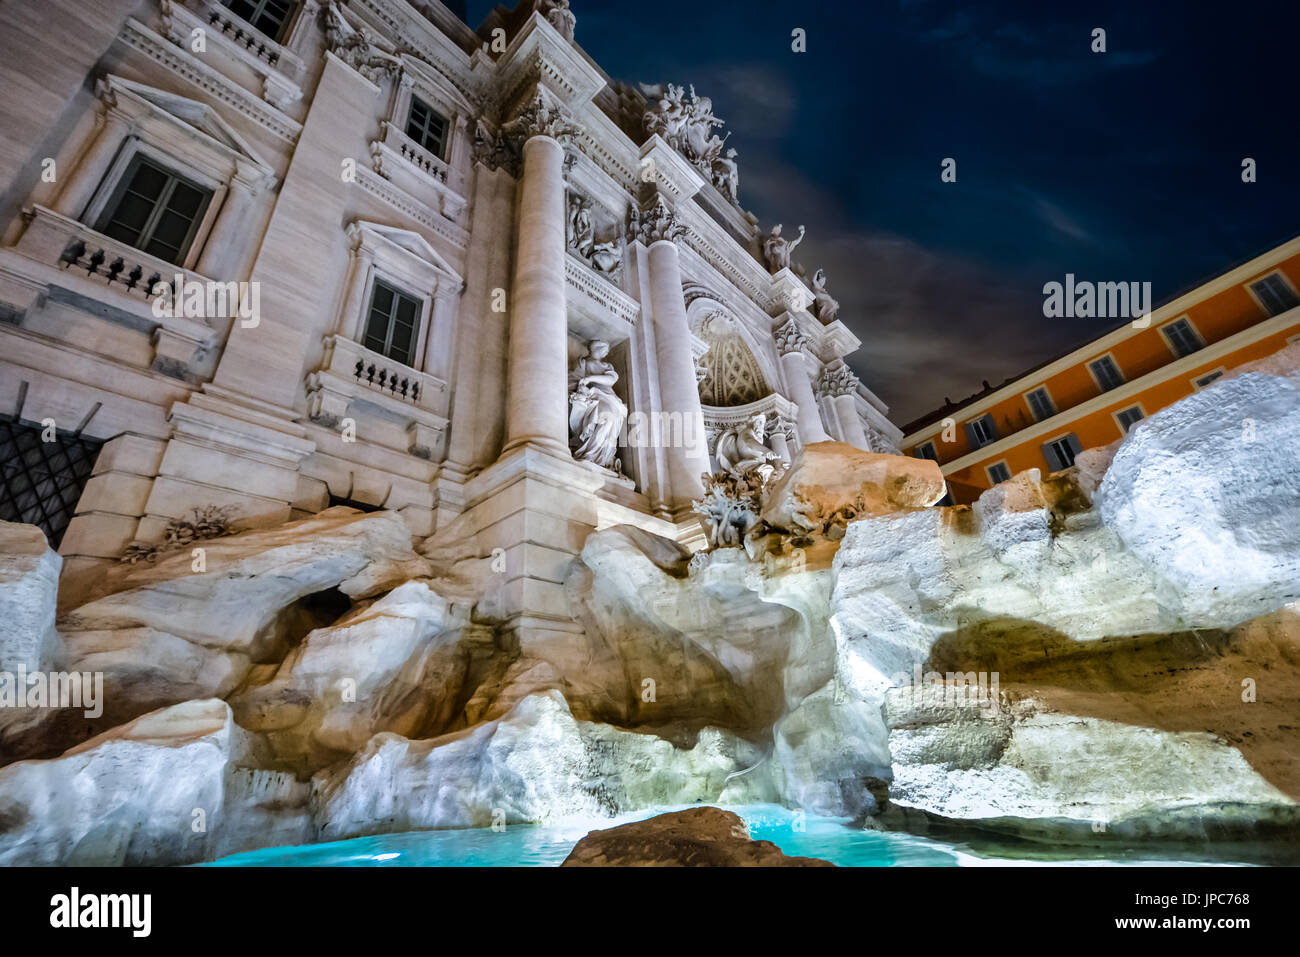 Close up of the Trevi Fountain in Rome Italy. Taken in the evening - Stock Image